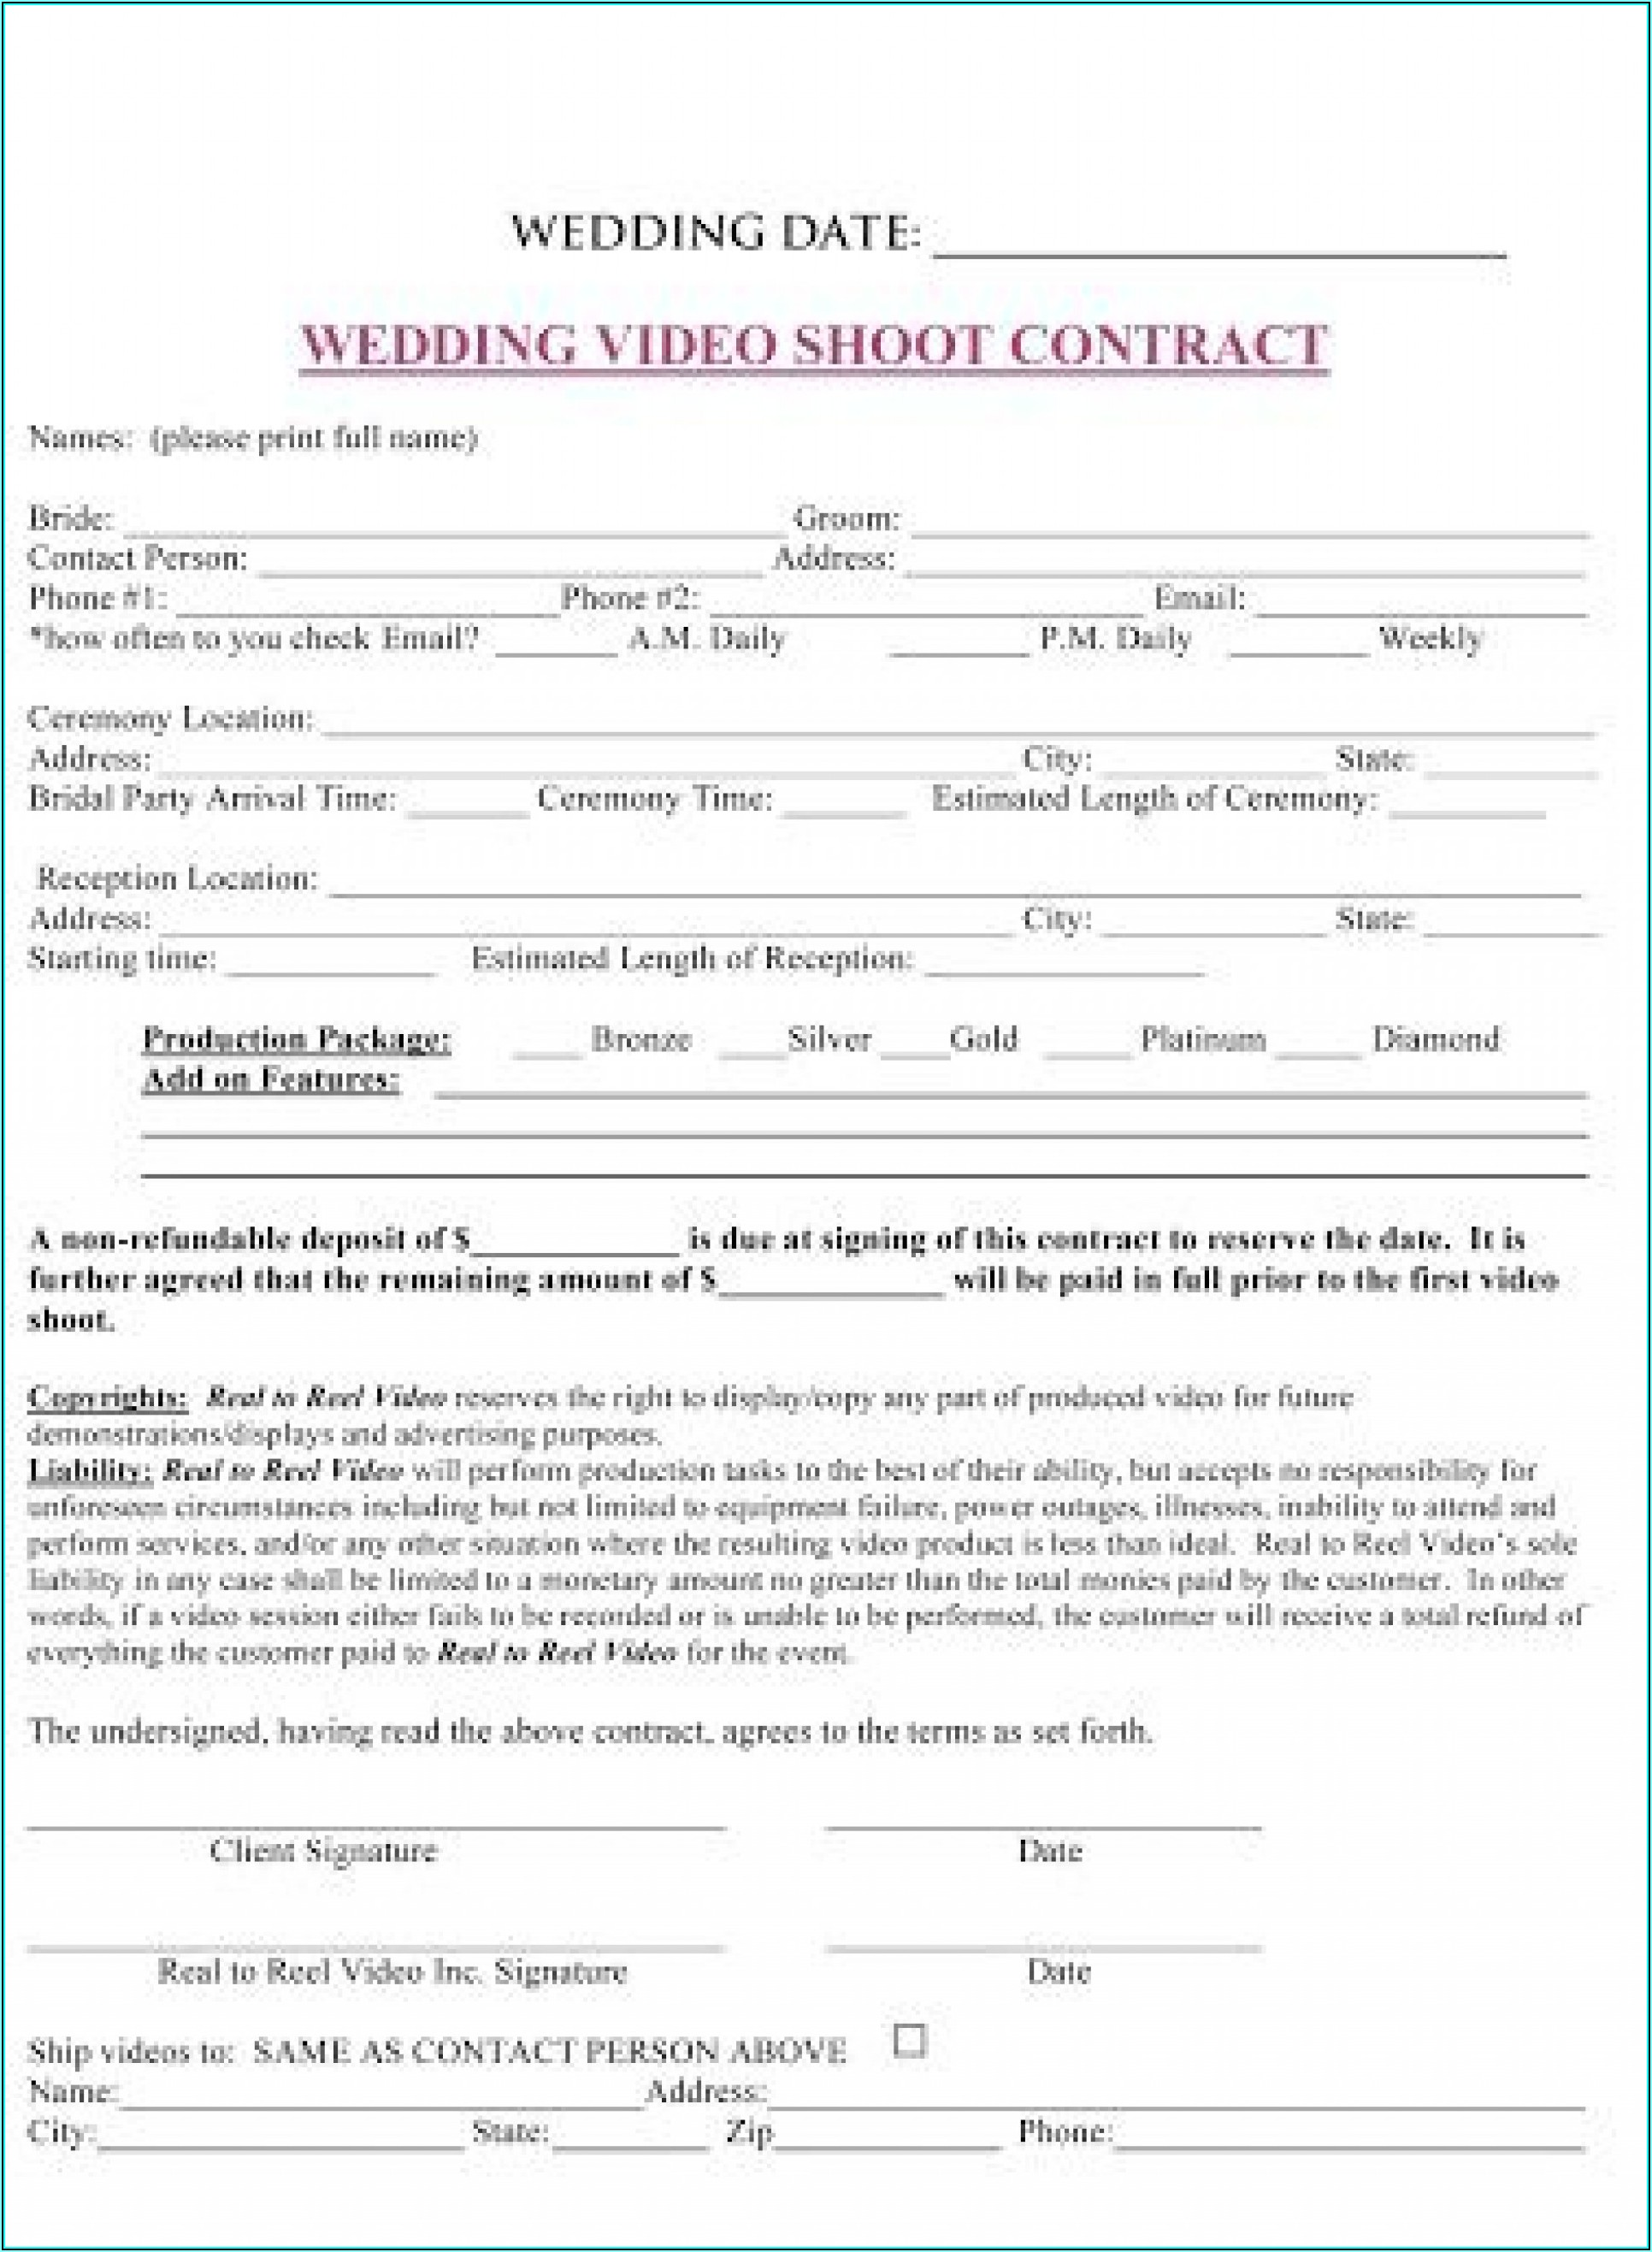 Wedding Planner Contract Template Australia